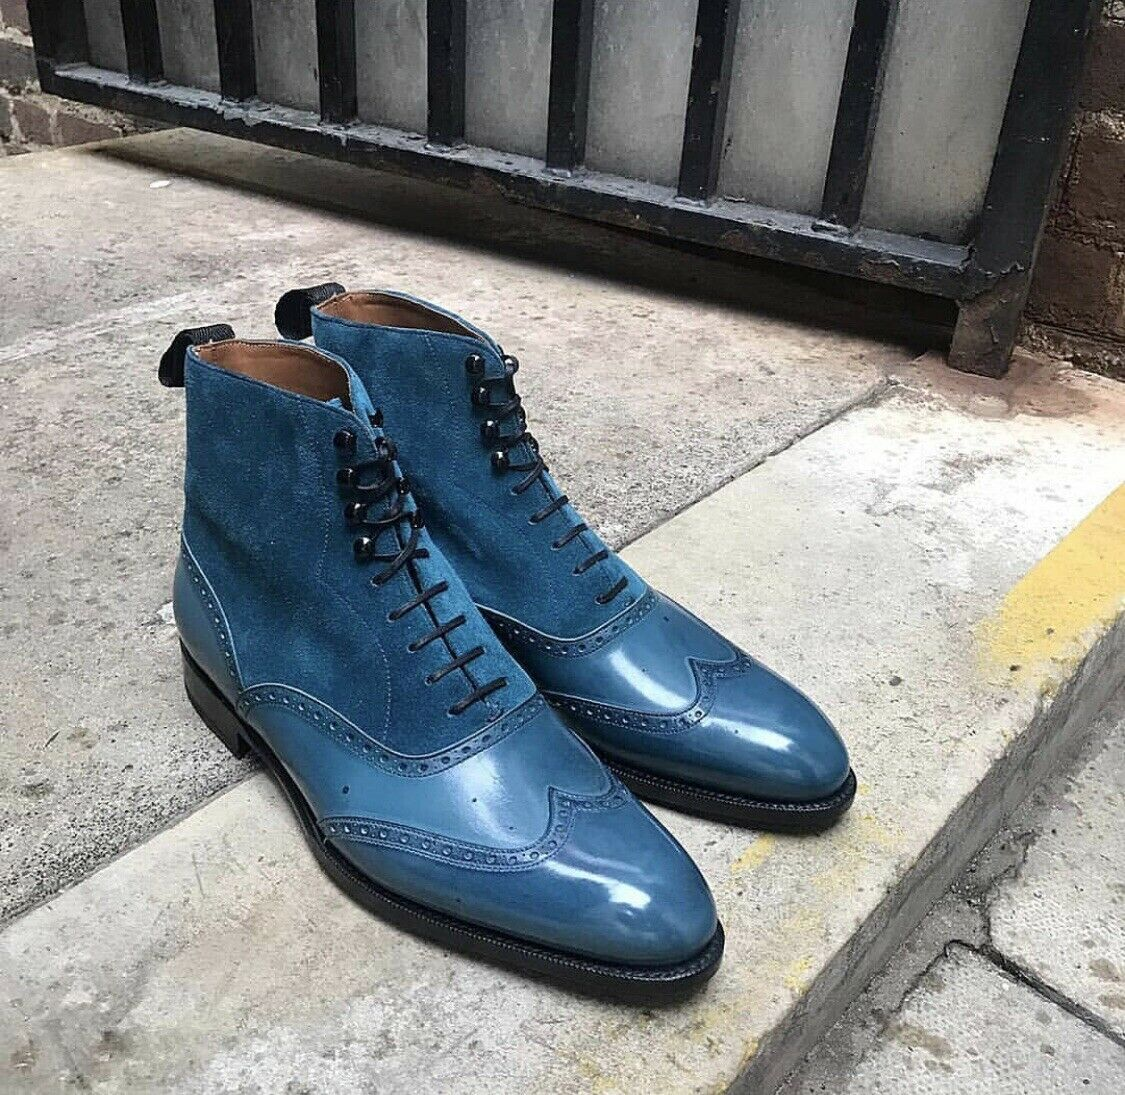 Handmade Men's Blue Leather Suede Wing Tip High Ankle Lace Up Dress/Formal Boots